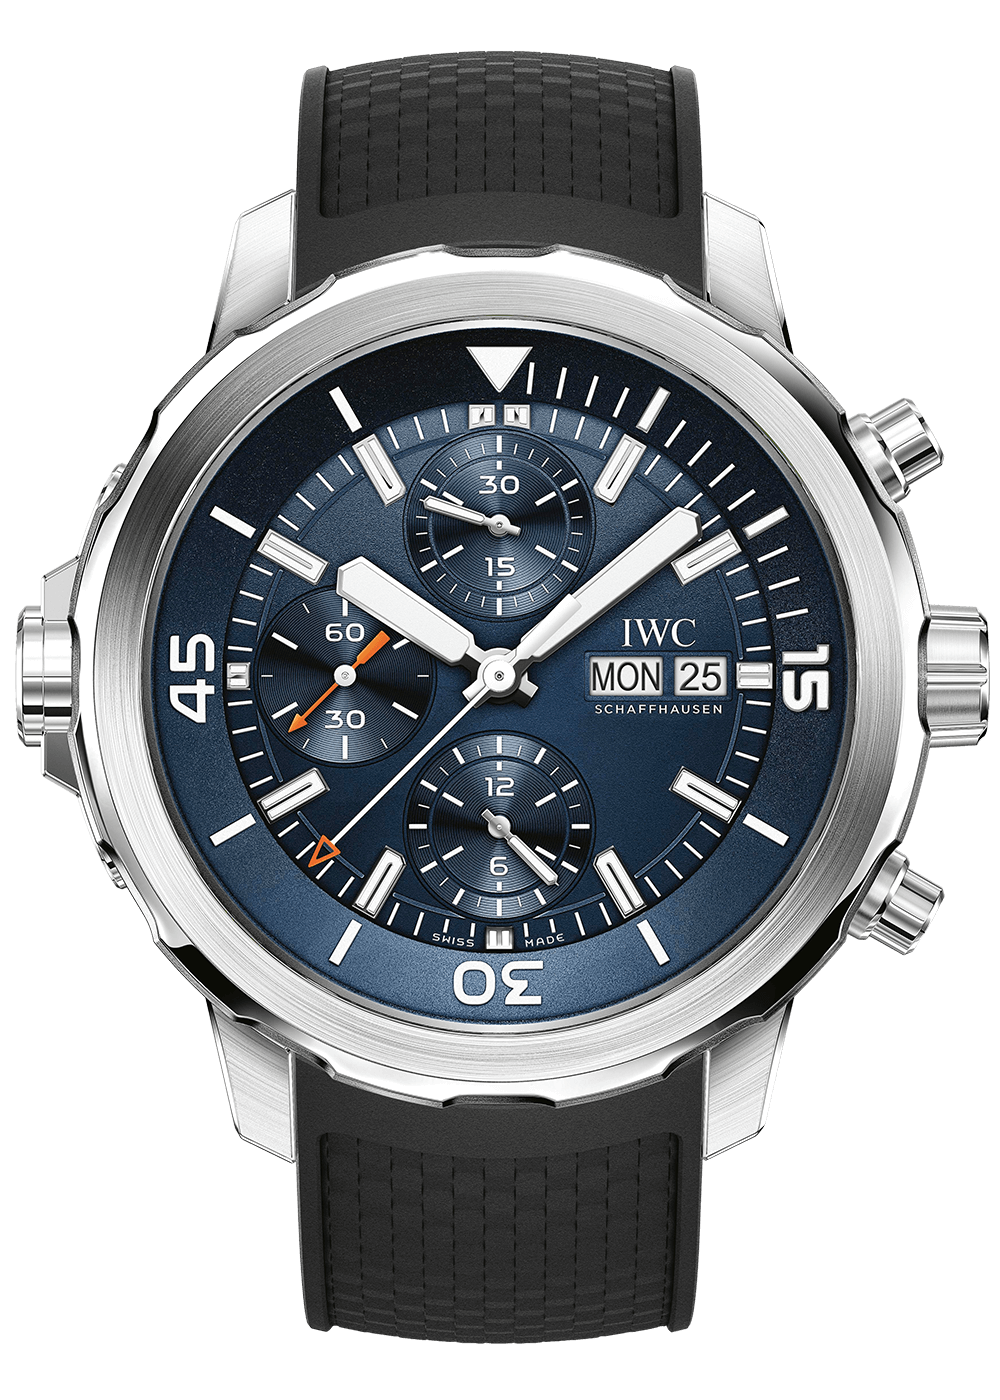 IWC Aquatimer Chronograph Edition Custeau Galli Zürich